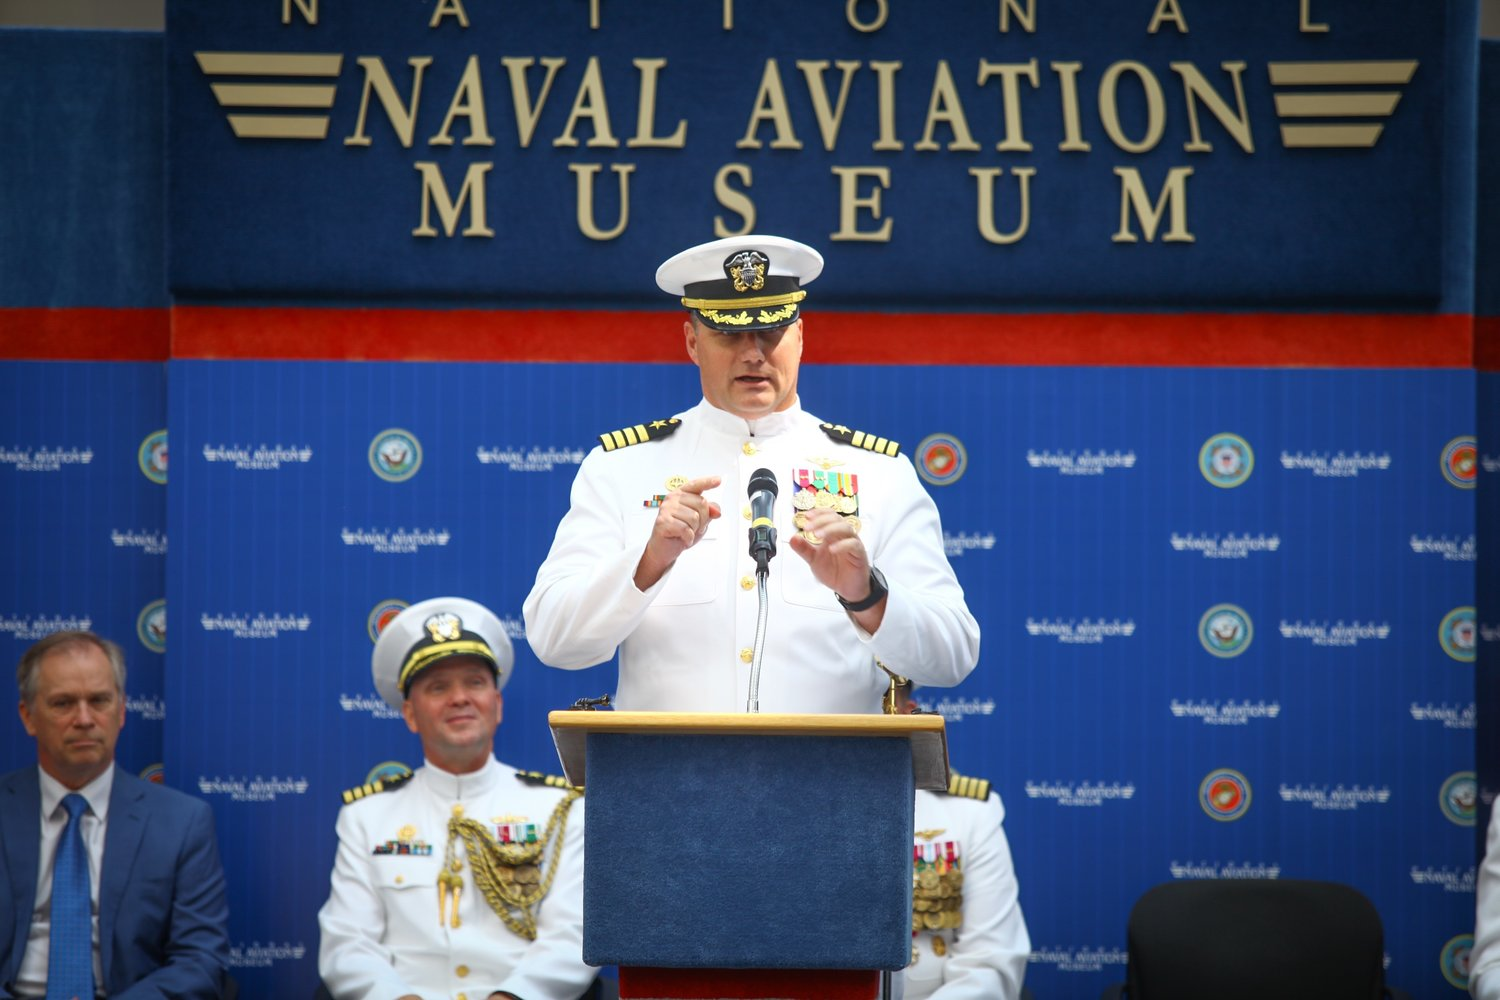 Summerdale Native takes command of Navy's International